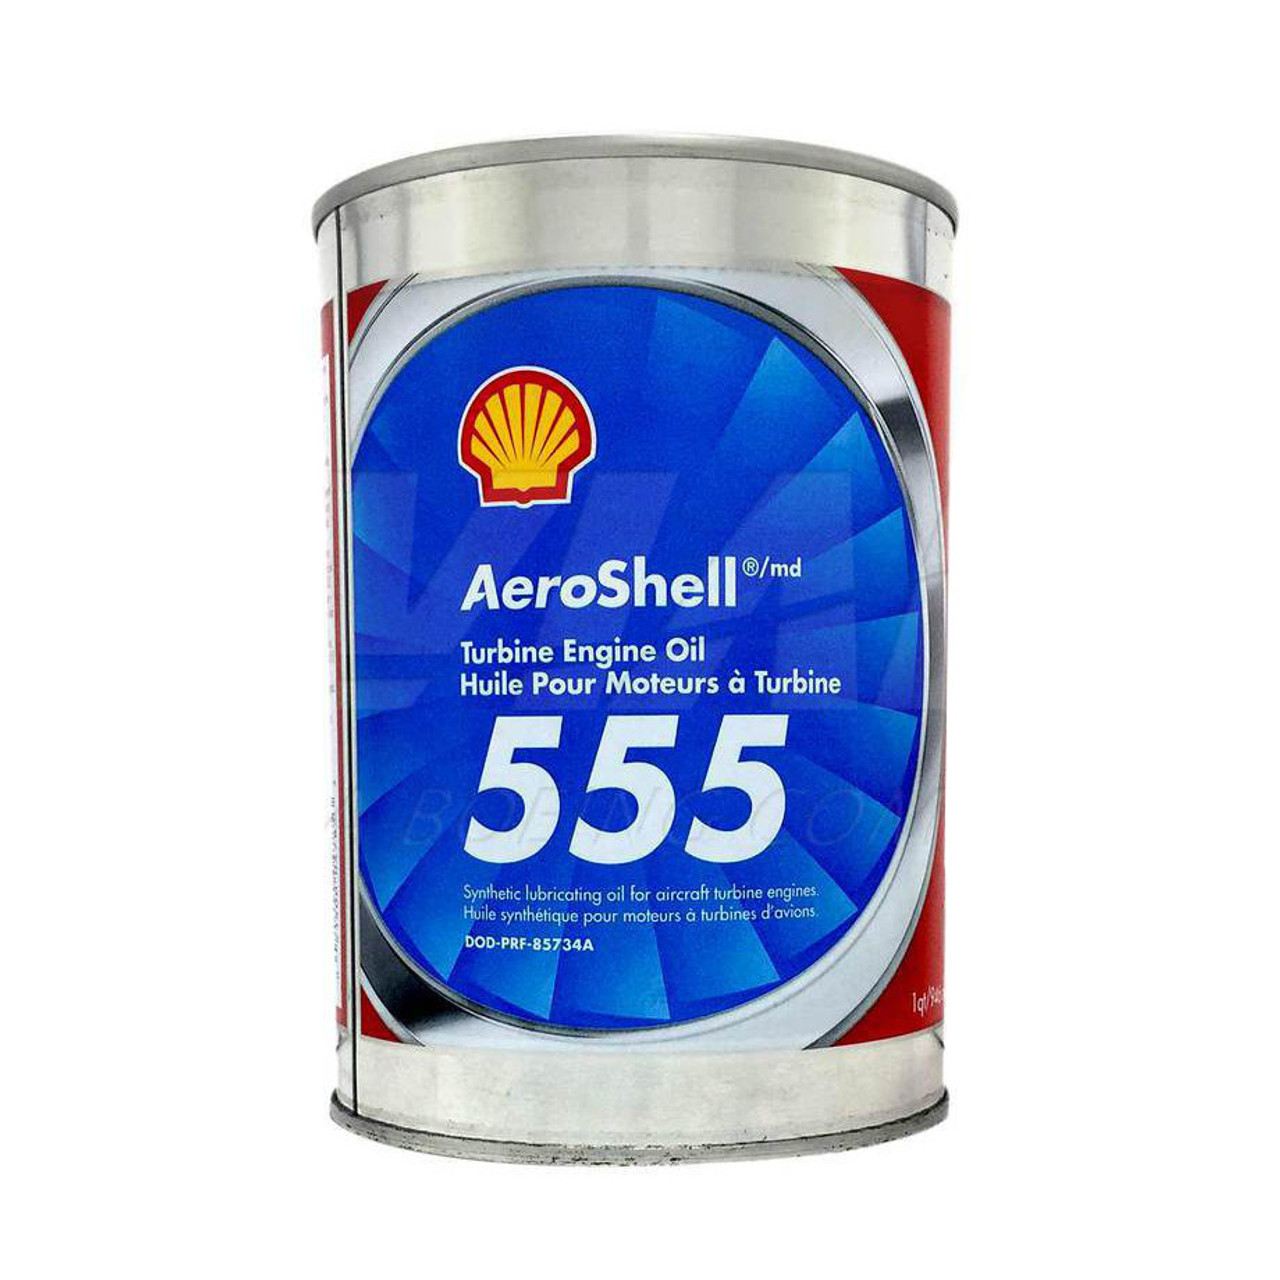 Aeroshell 555 Turbine Engine Oil - 24 Quart Case